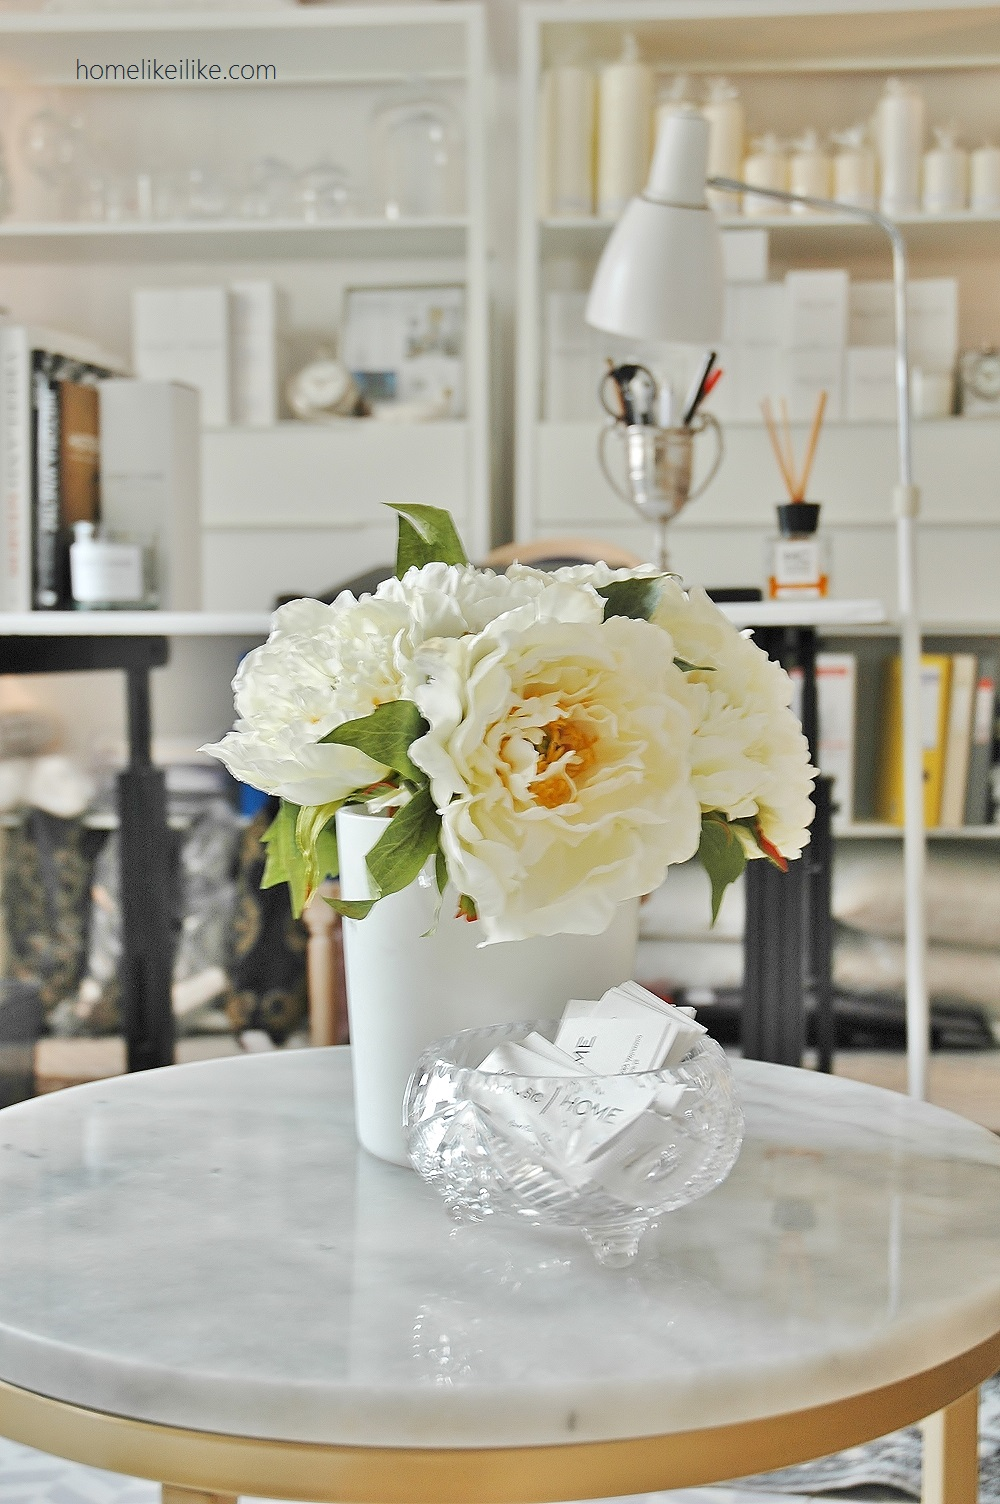 peonies and marble - homelikeilike.com